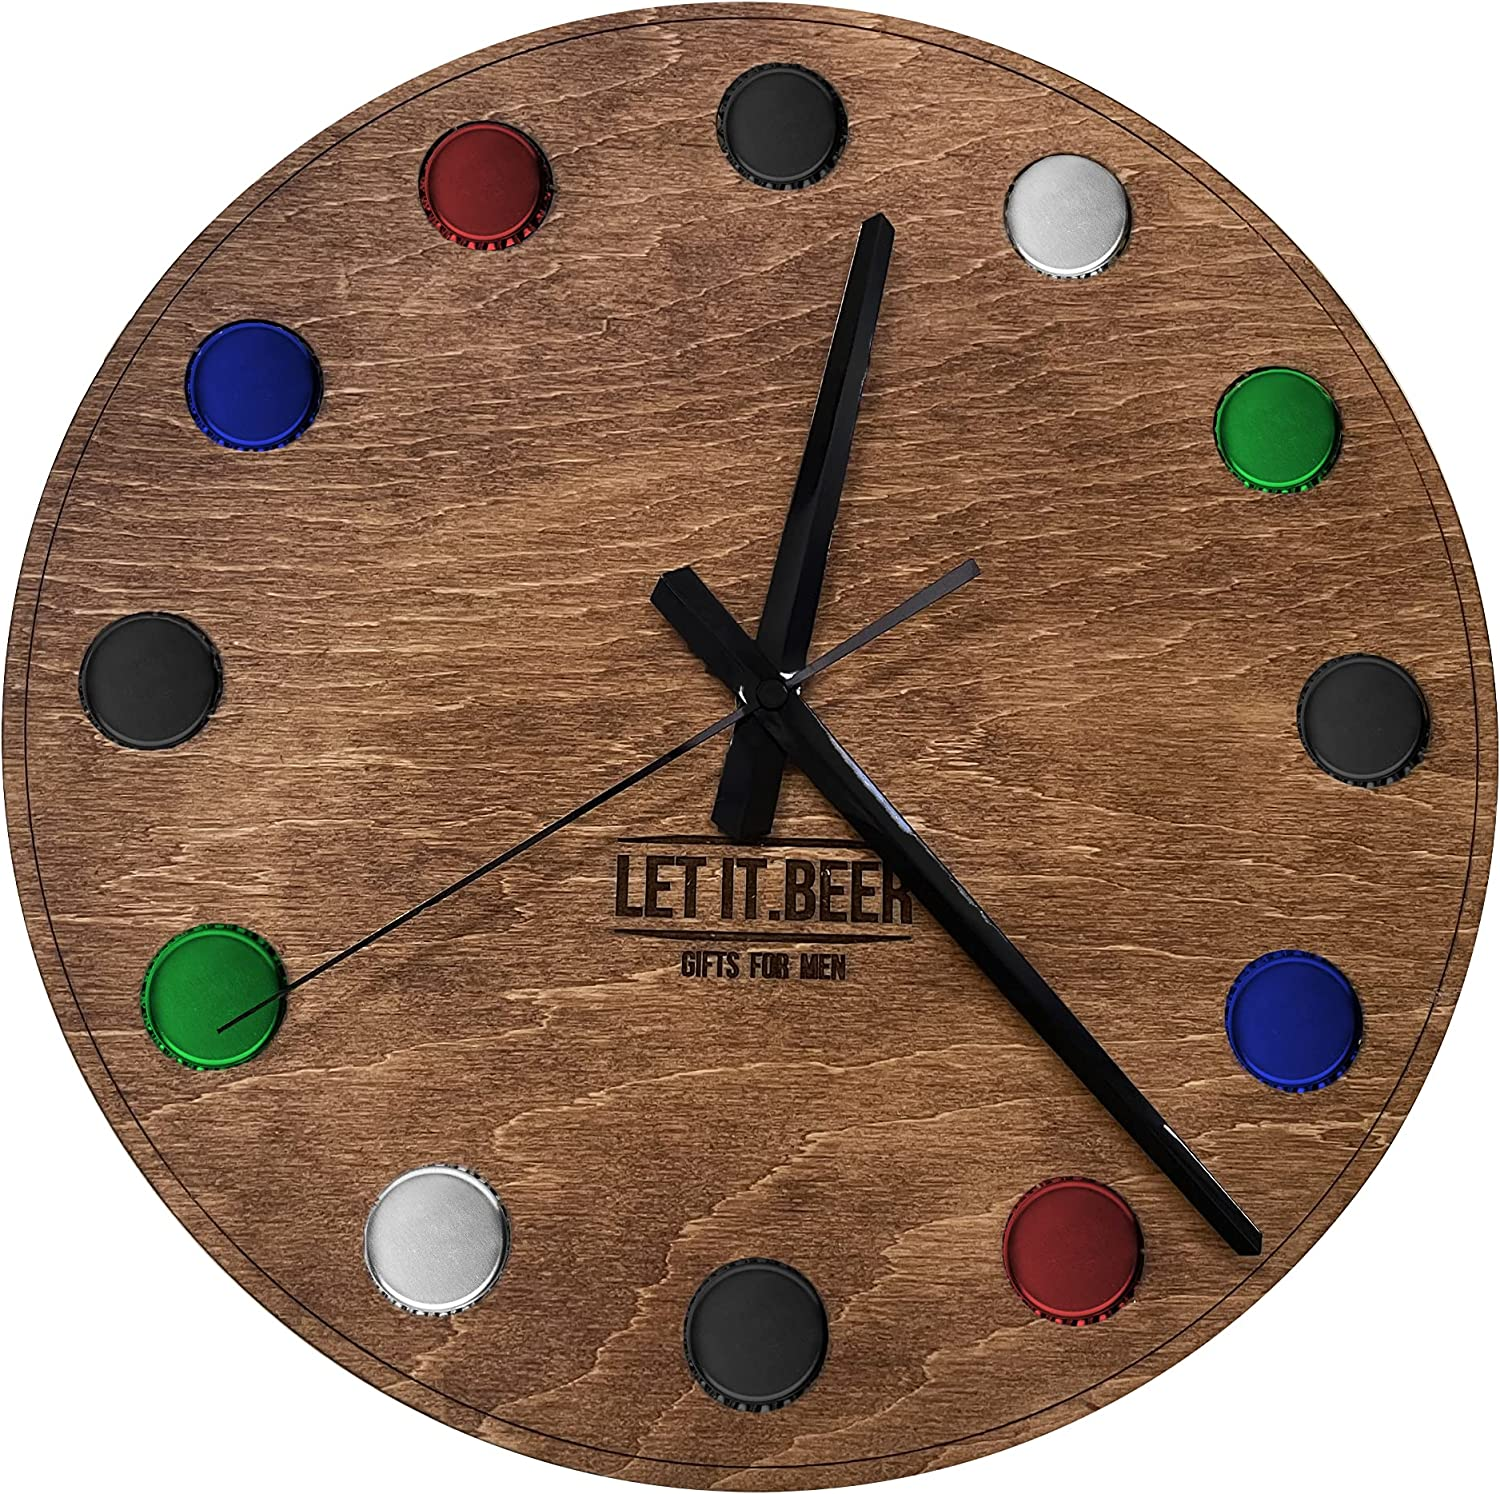 Wall Clock Gifts for Men - Beer Non-Ticking Silent Wood Room Decor - Rustic Round Clock for Home Decor Kitchen Decor DIY